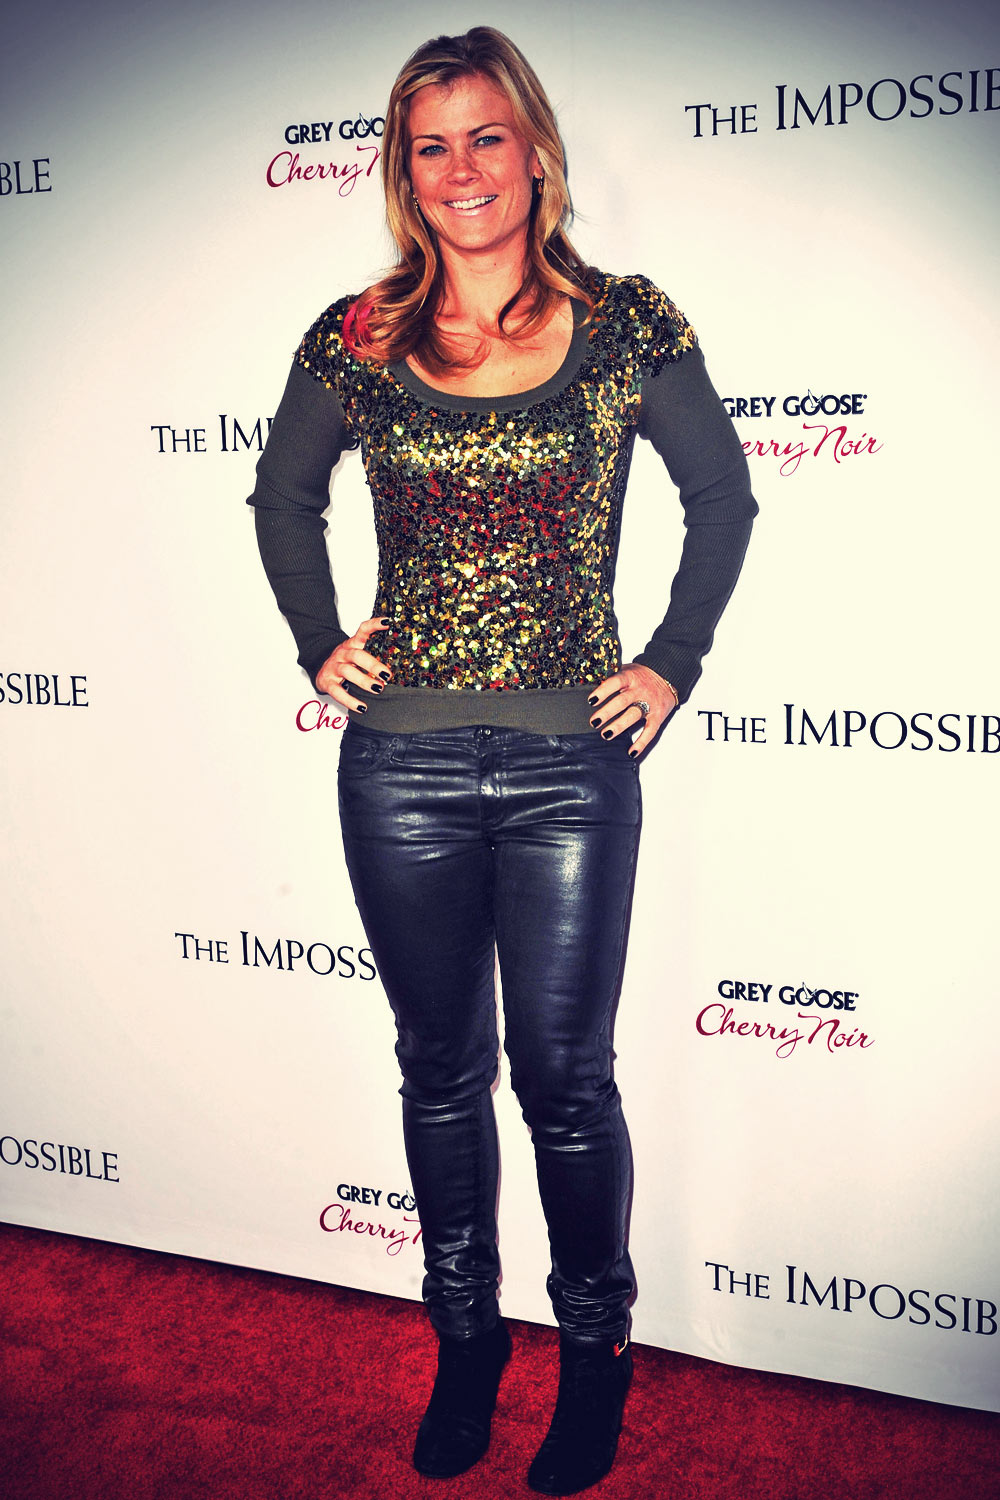 Alison Sweeney attends Los Angeles Premiere of The Impossible